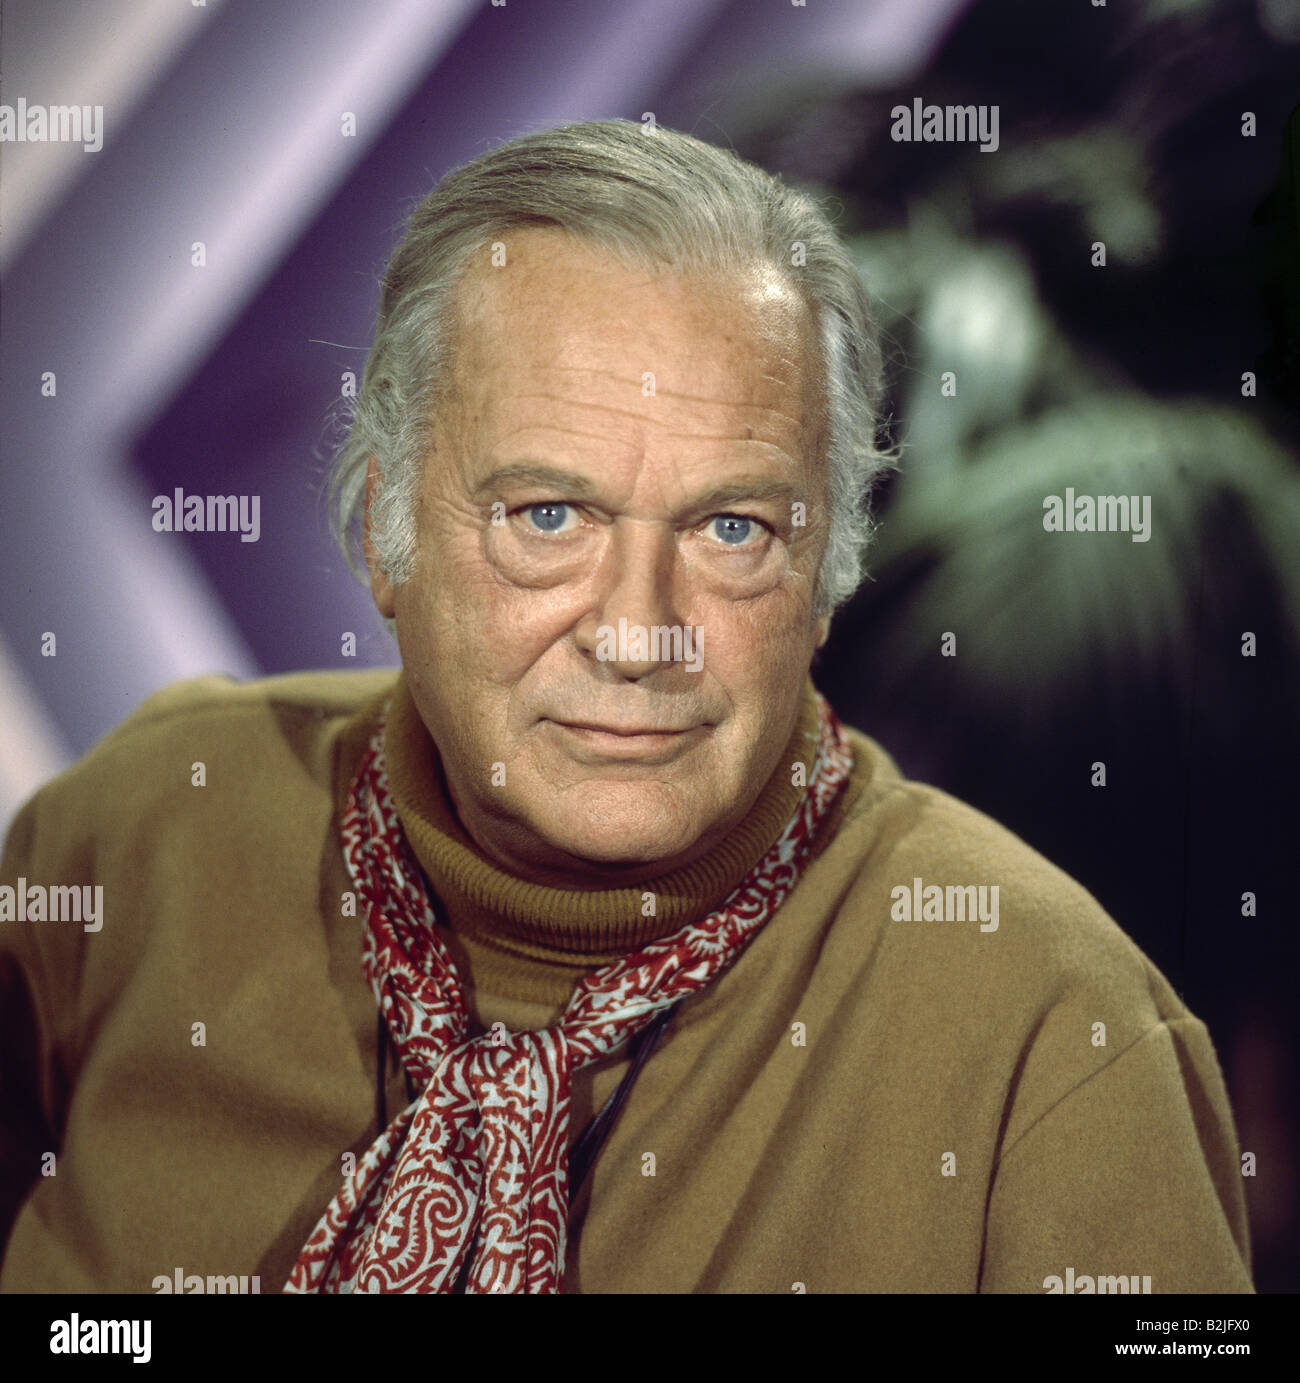 Juergens, Curd, 13.12.1915 - 18.6.1982, German actor, portrait, to tv broadcast 'Just a Gigolo', ARD, 11.10.1982, - Stock Image